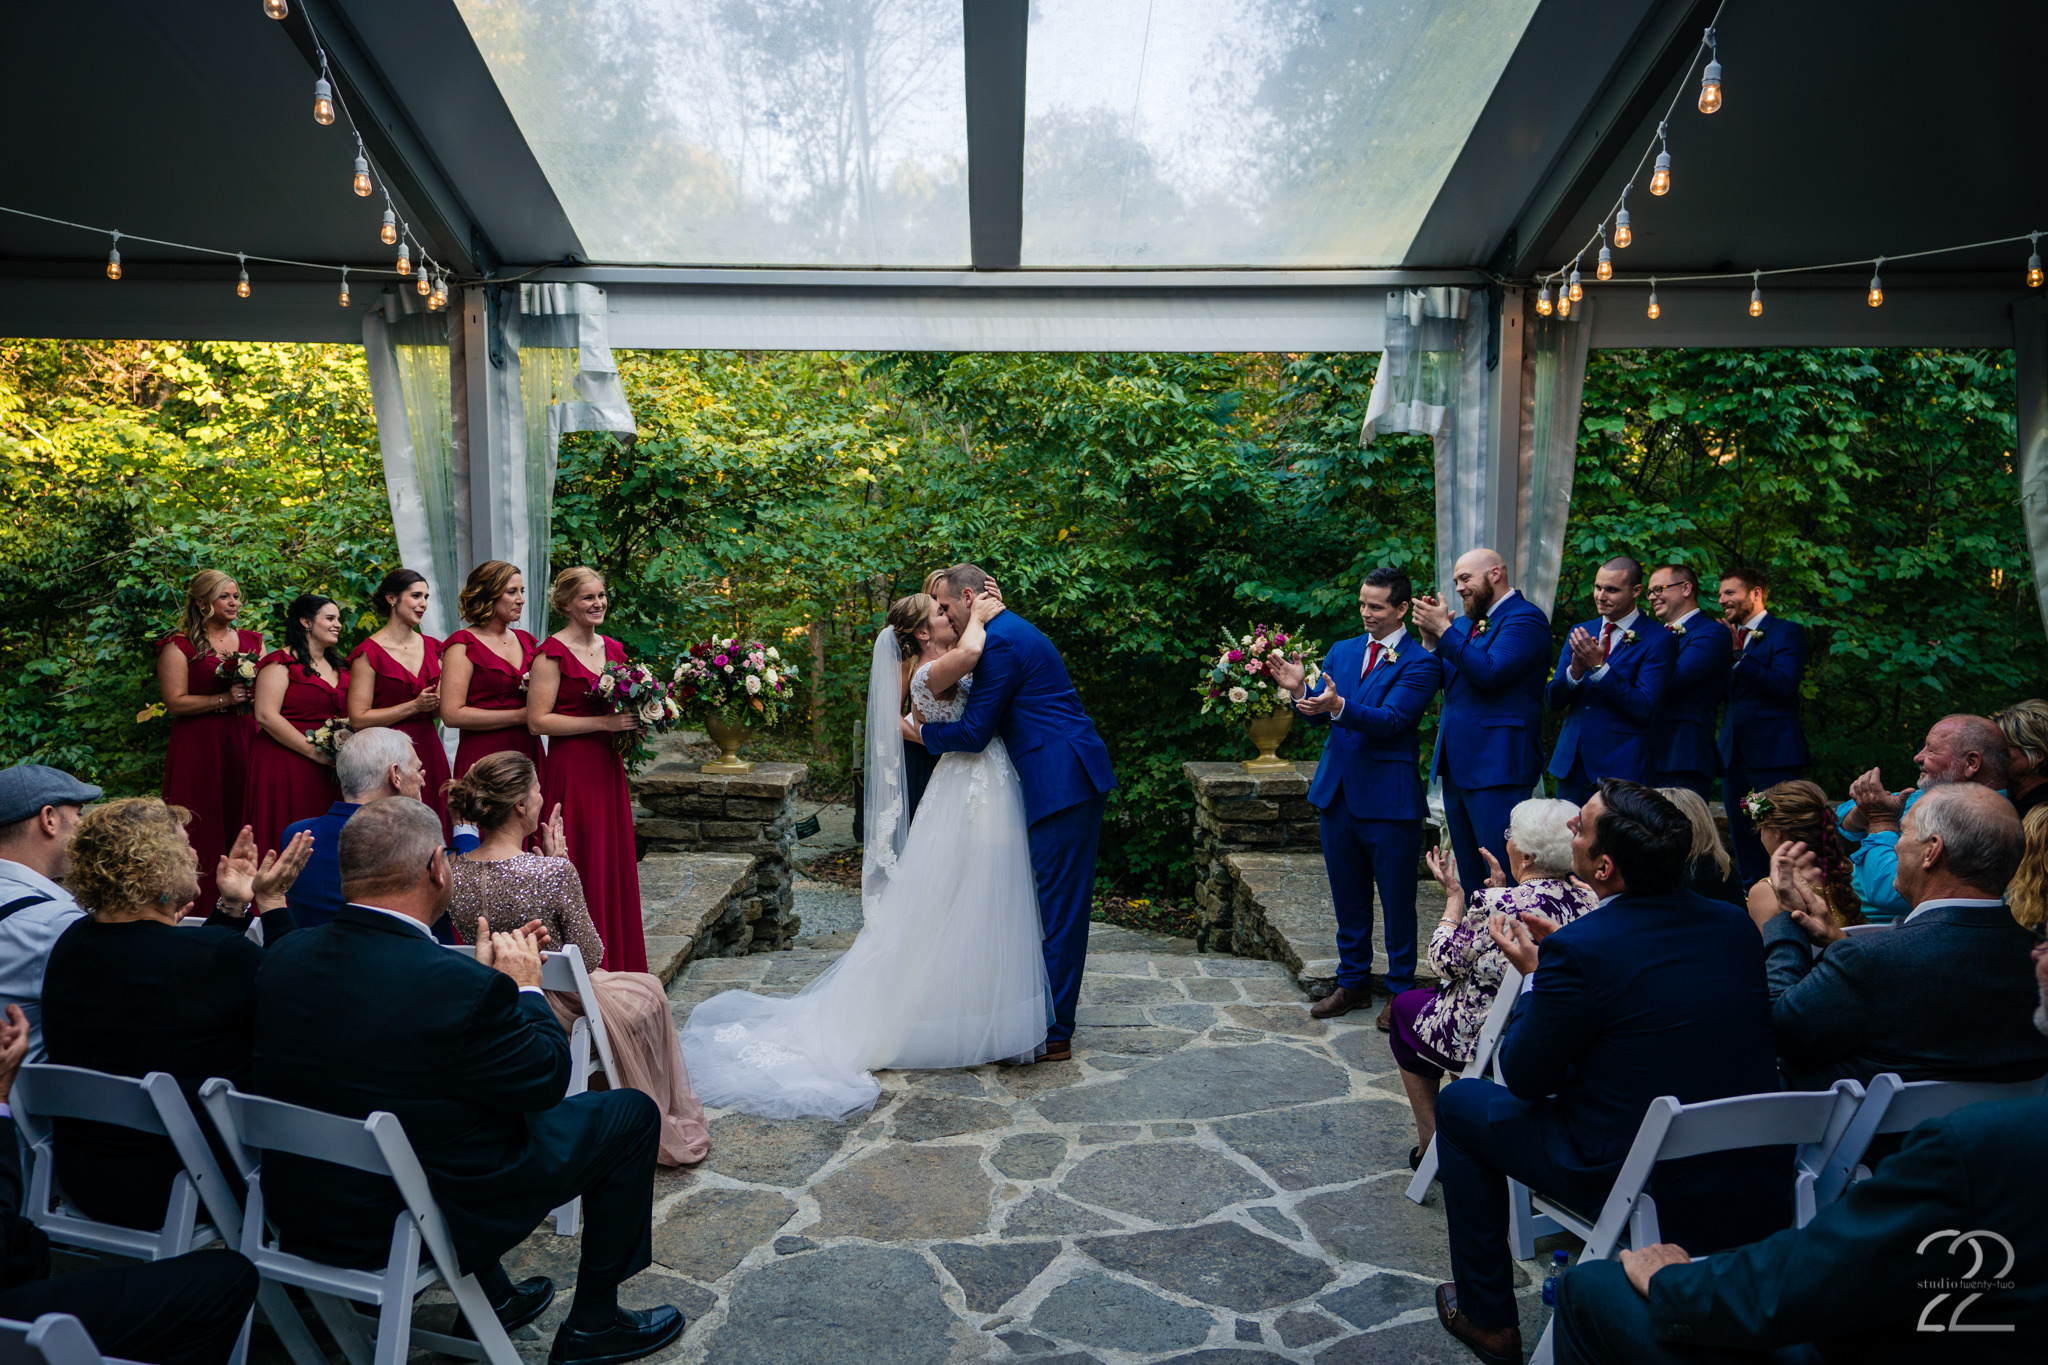 Krippendorf Lodge - Studio 22 Photography - Outdoor Lodge Wedding